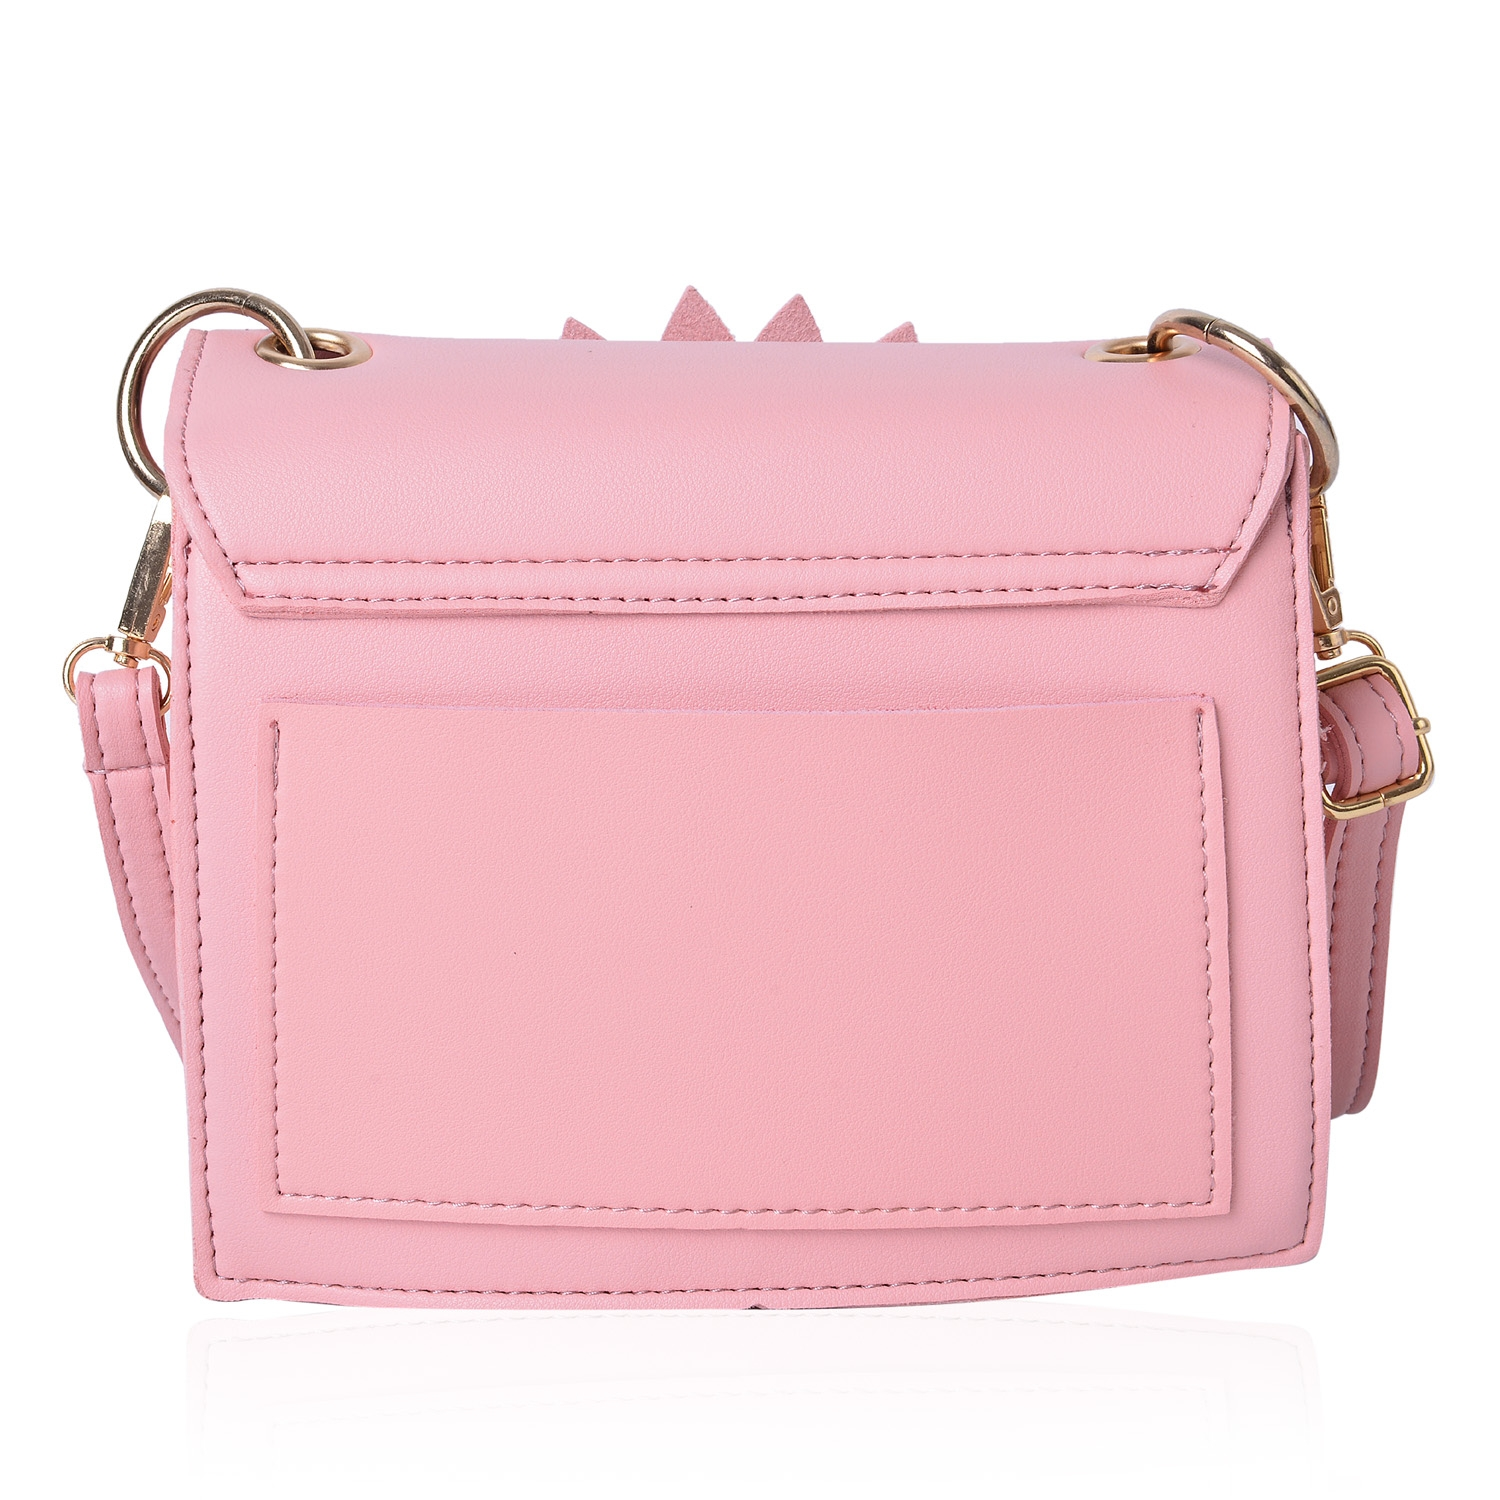 Pink 3D Flower Faux Leather Clutch Bag with Removable Crossbody Strap (7.5x2.5x6.5 in)